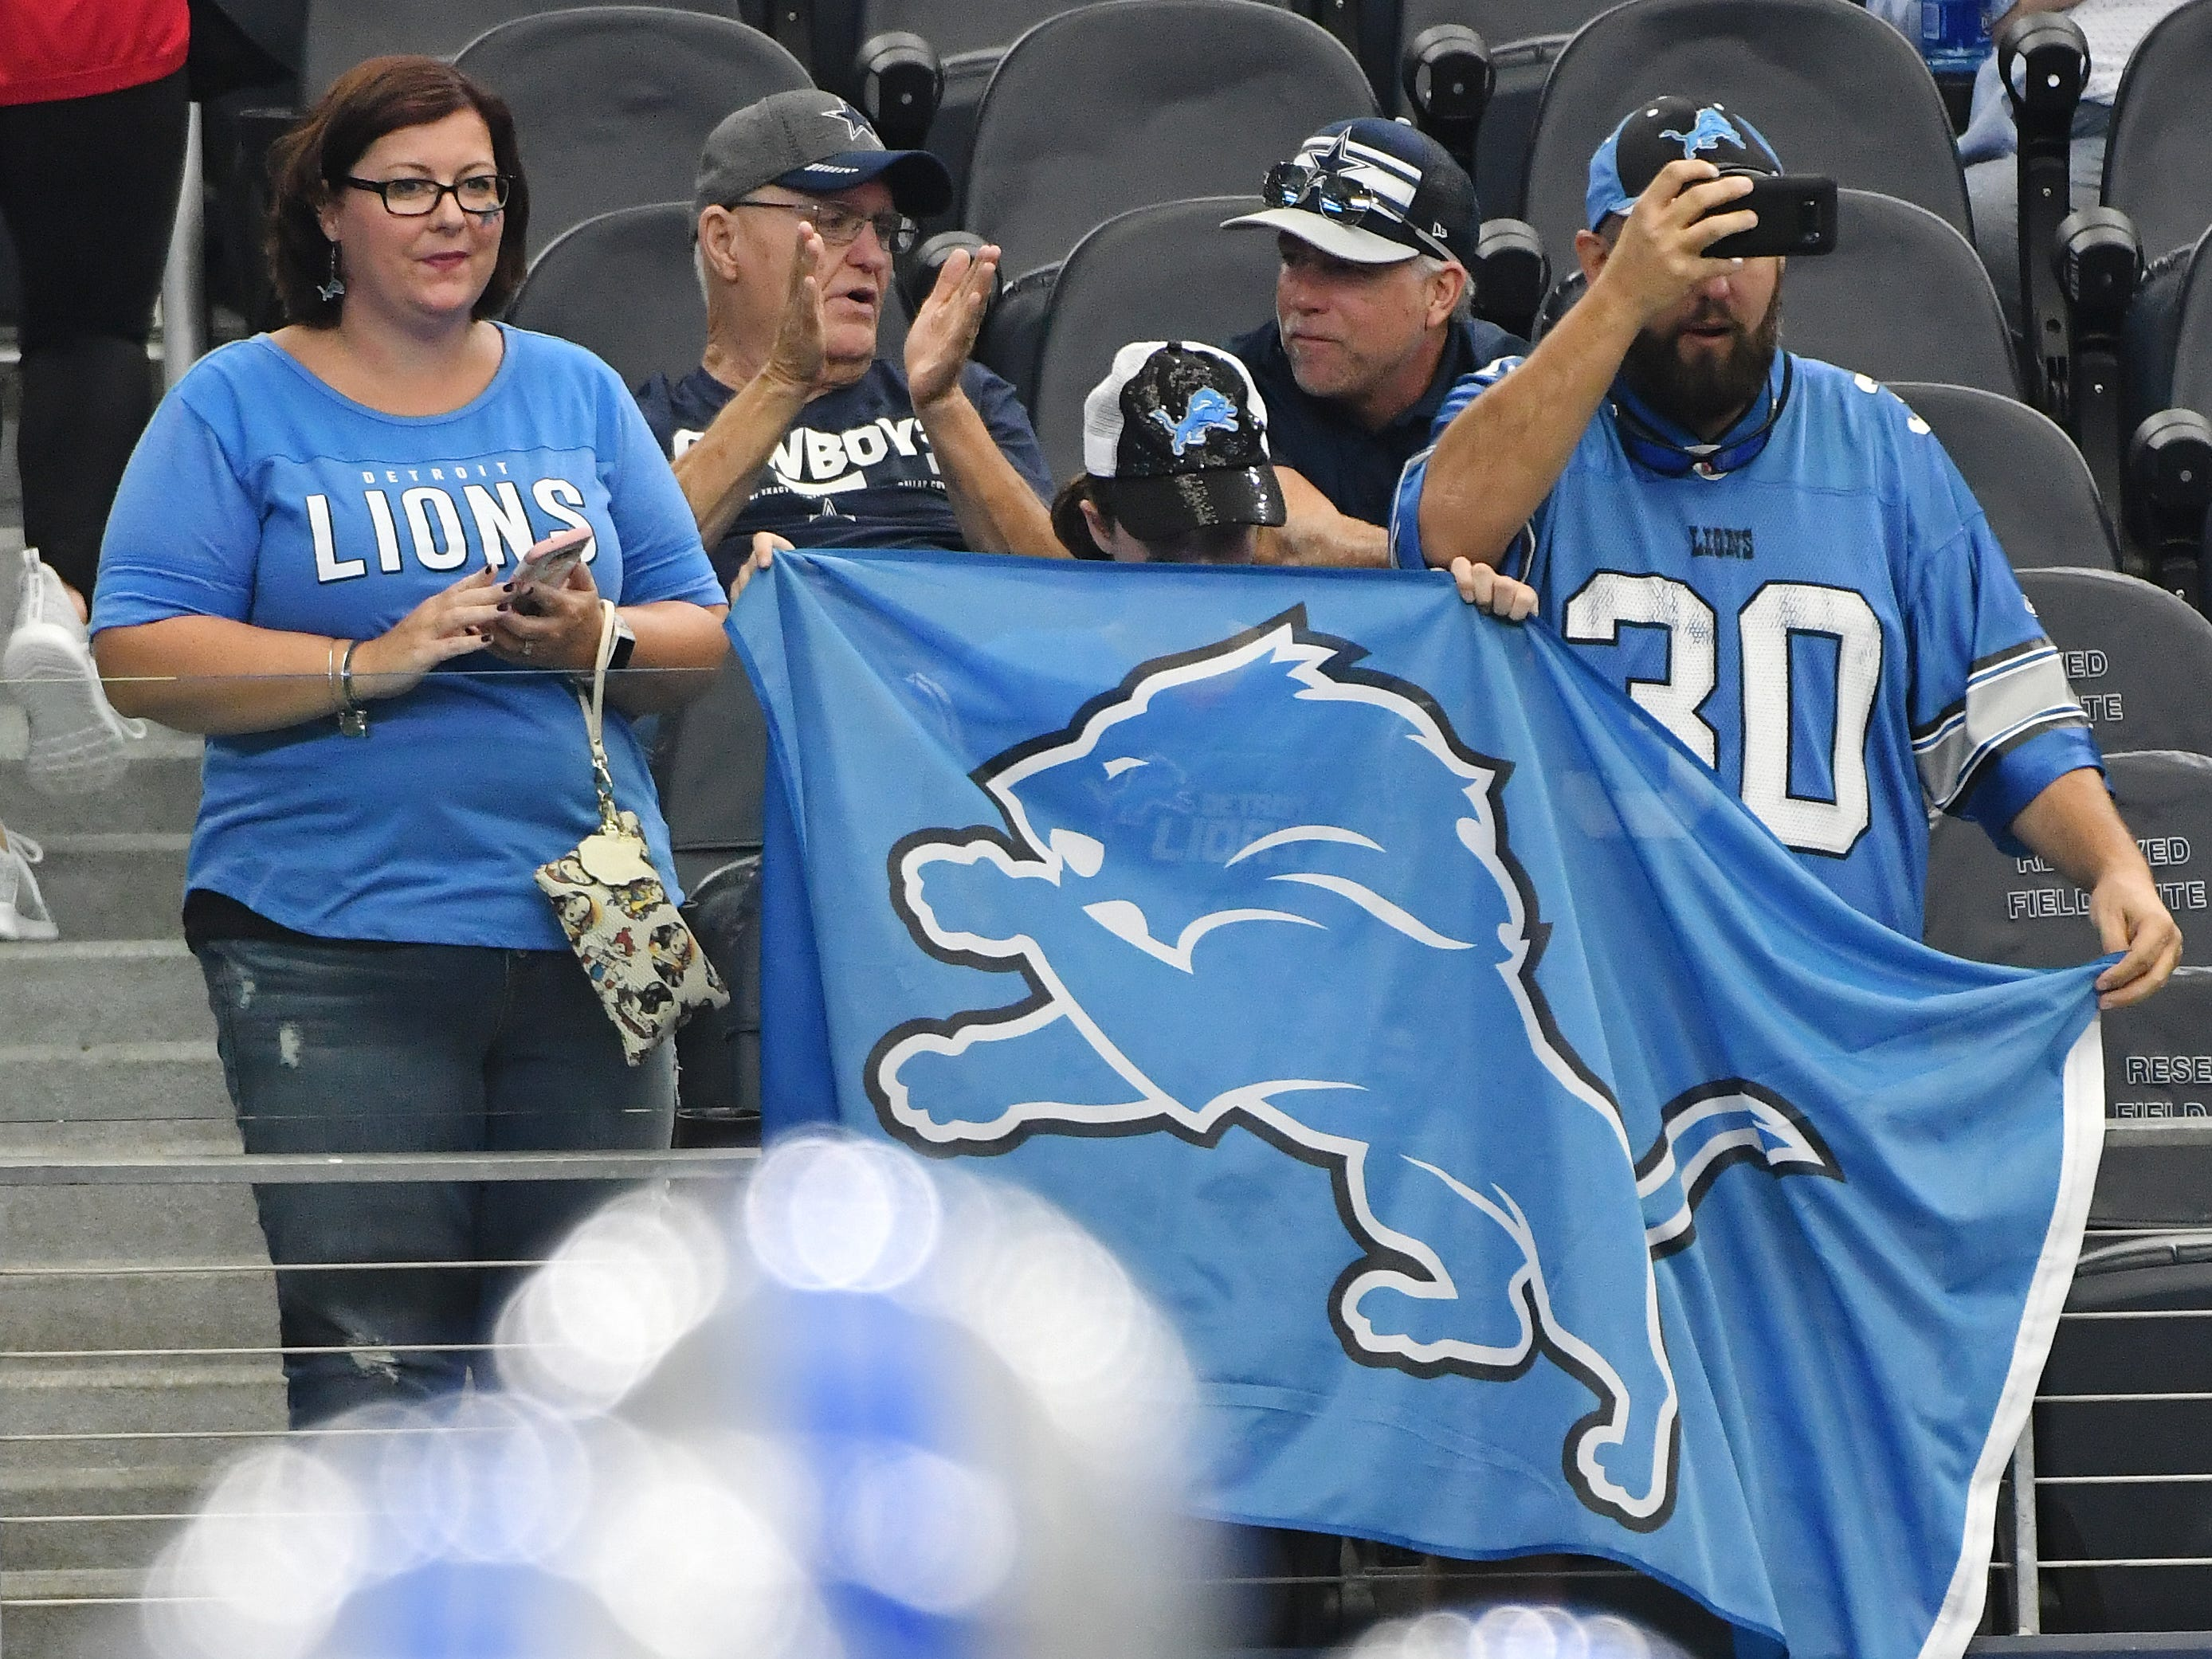 Lions fans in the stands in Texas as Detroit warms up before taking on the Cowboys in Arlington.